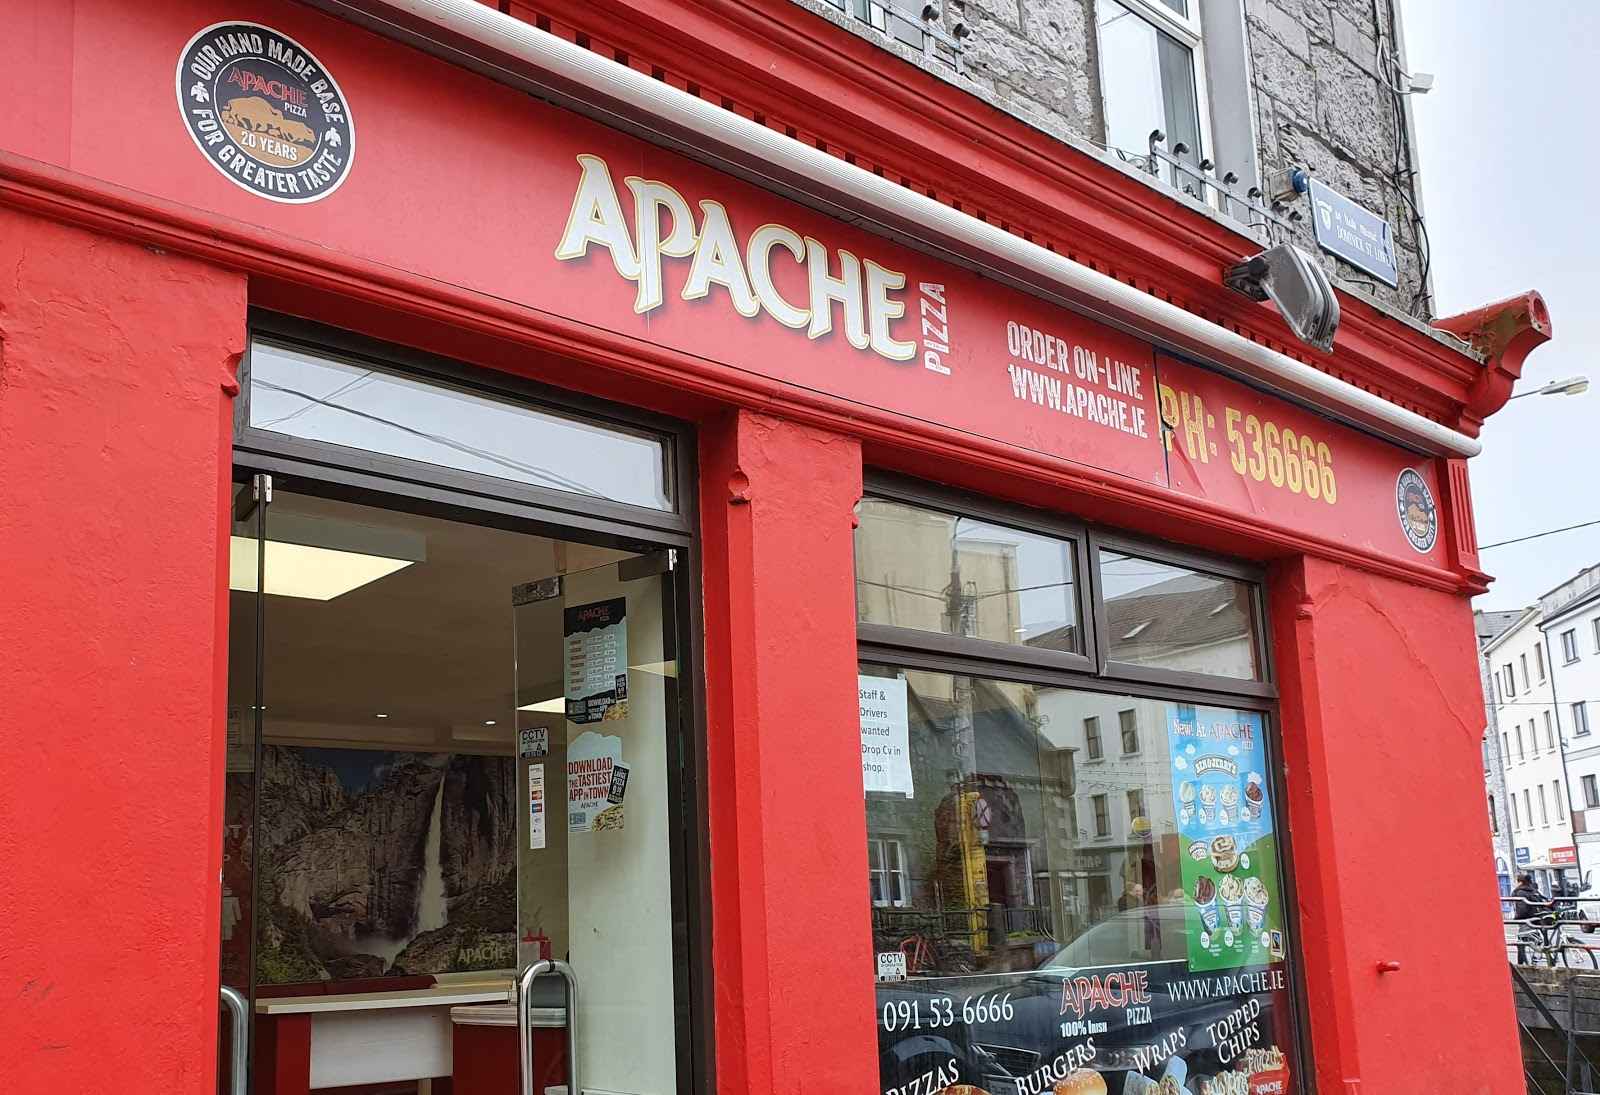 Shop doorway and front window with sign.  Apache Galway phone 091 536 666 - Apache Pizza 20 years our hand made base for better taste - circular logo with buffalo silhouette figures inside